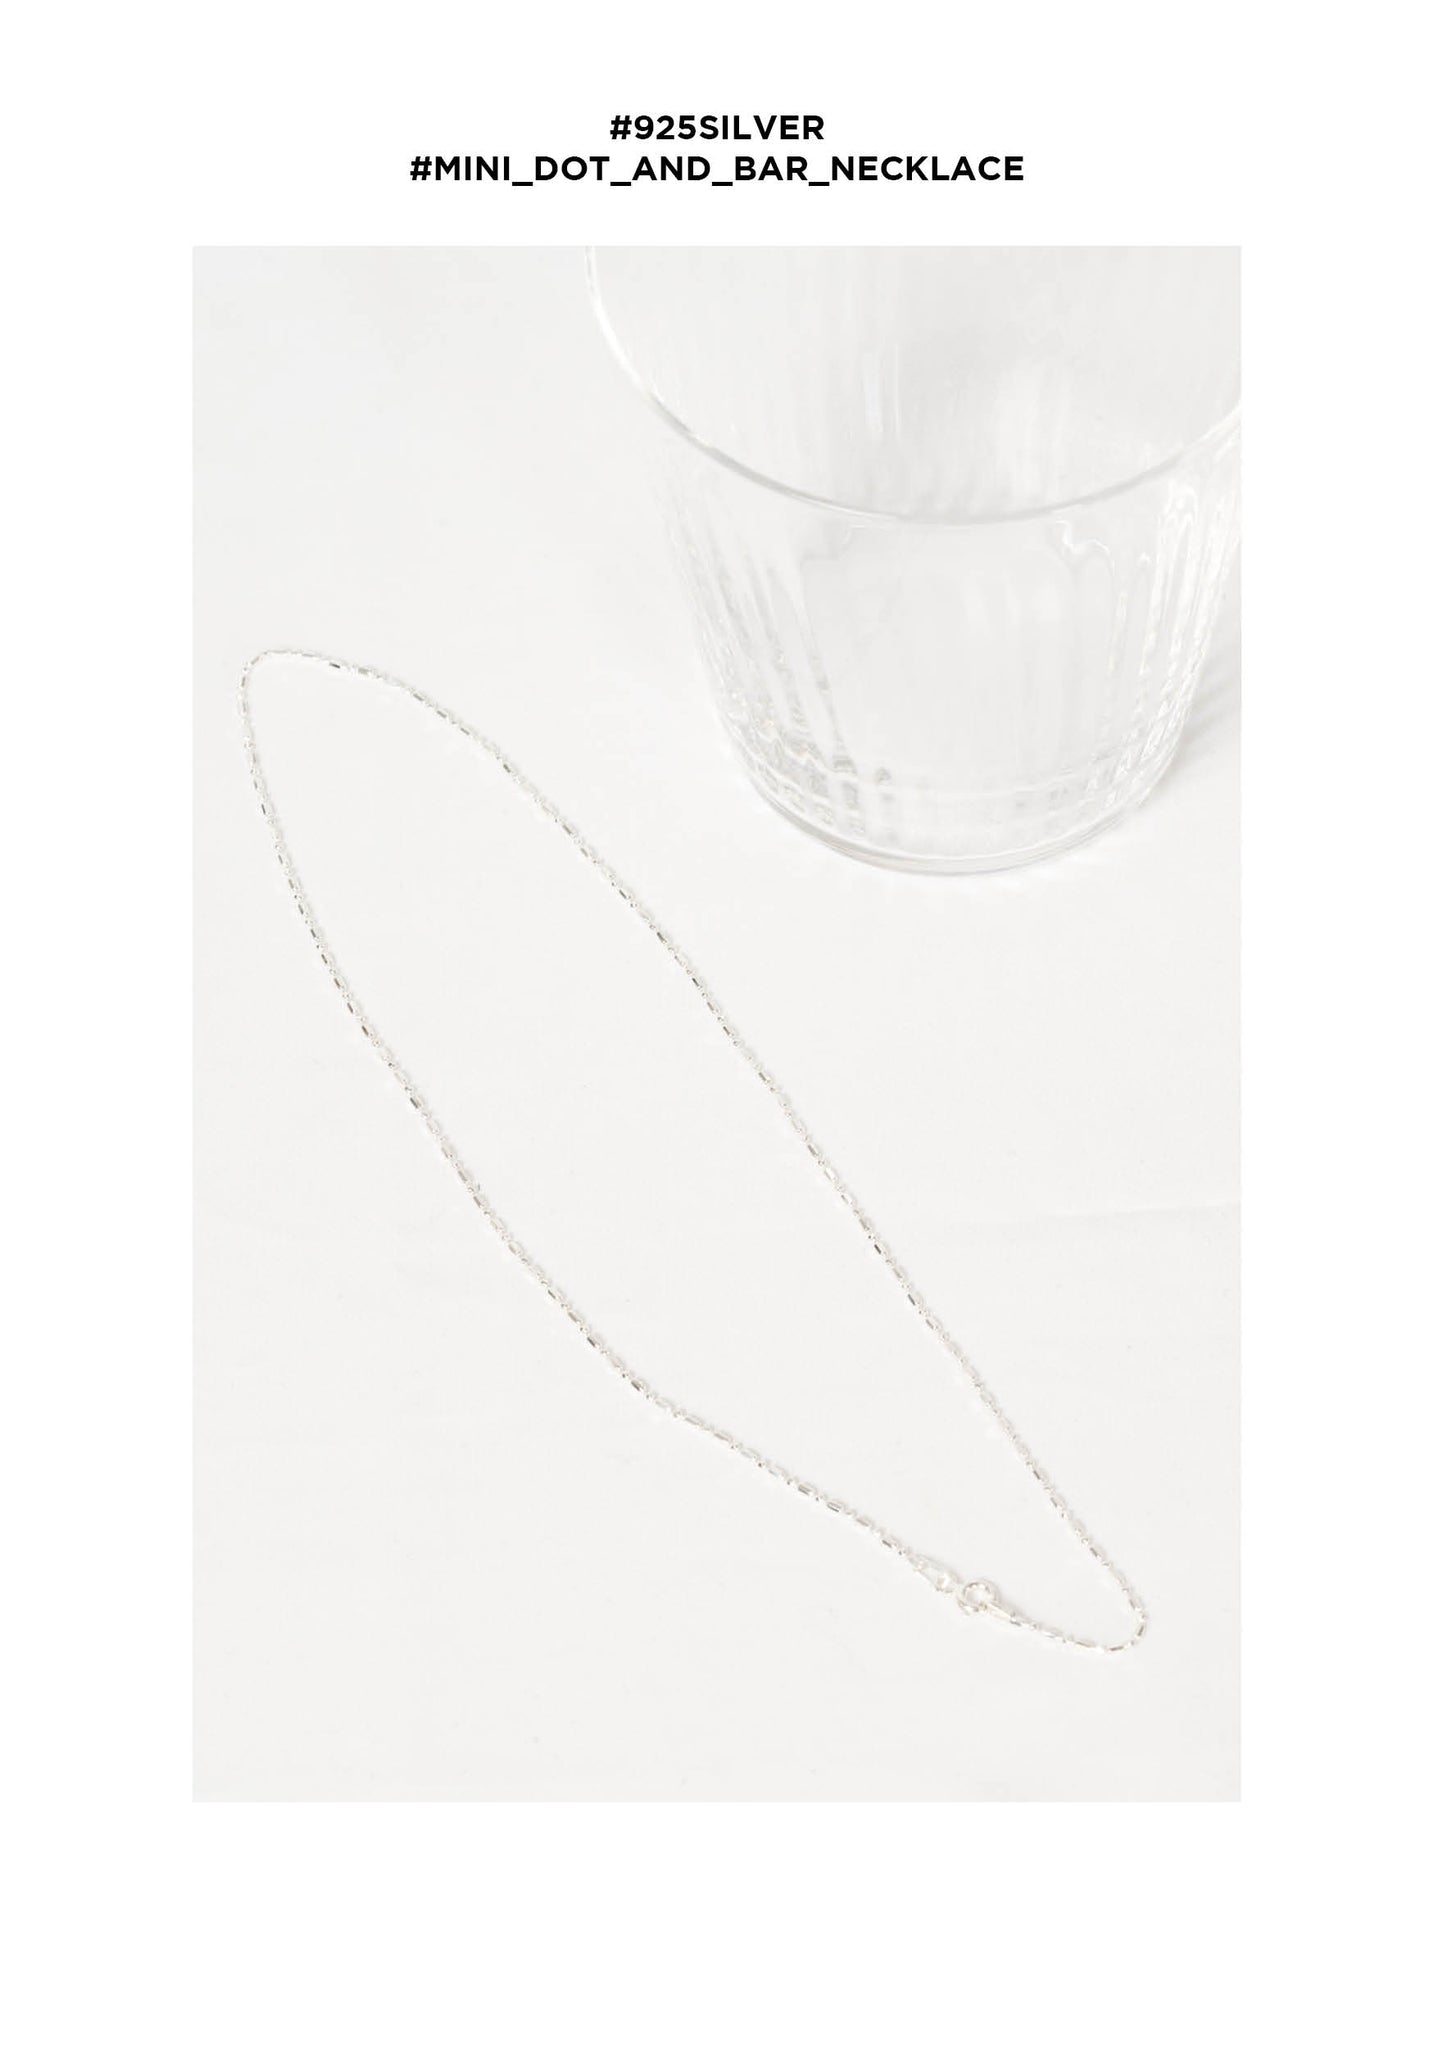 925 Silver Mini Dot And Bar Necklace - whoami